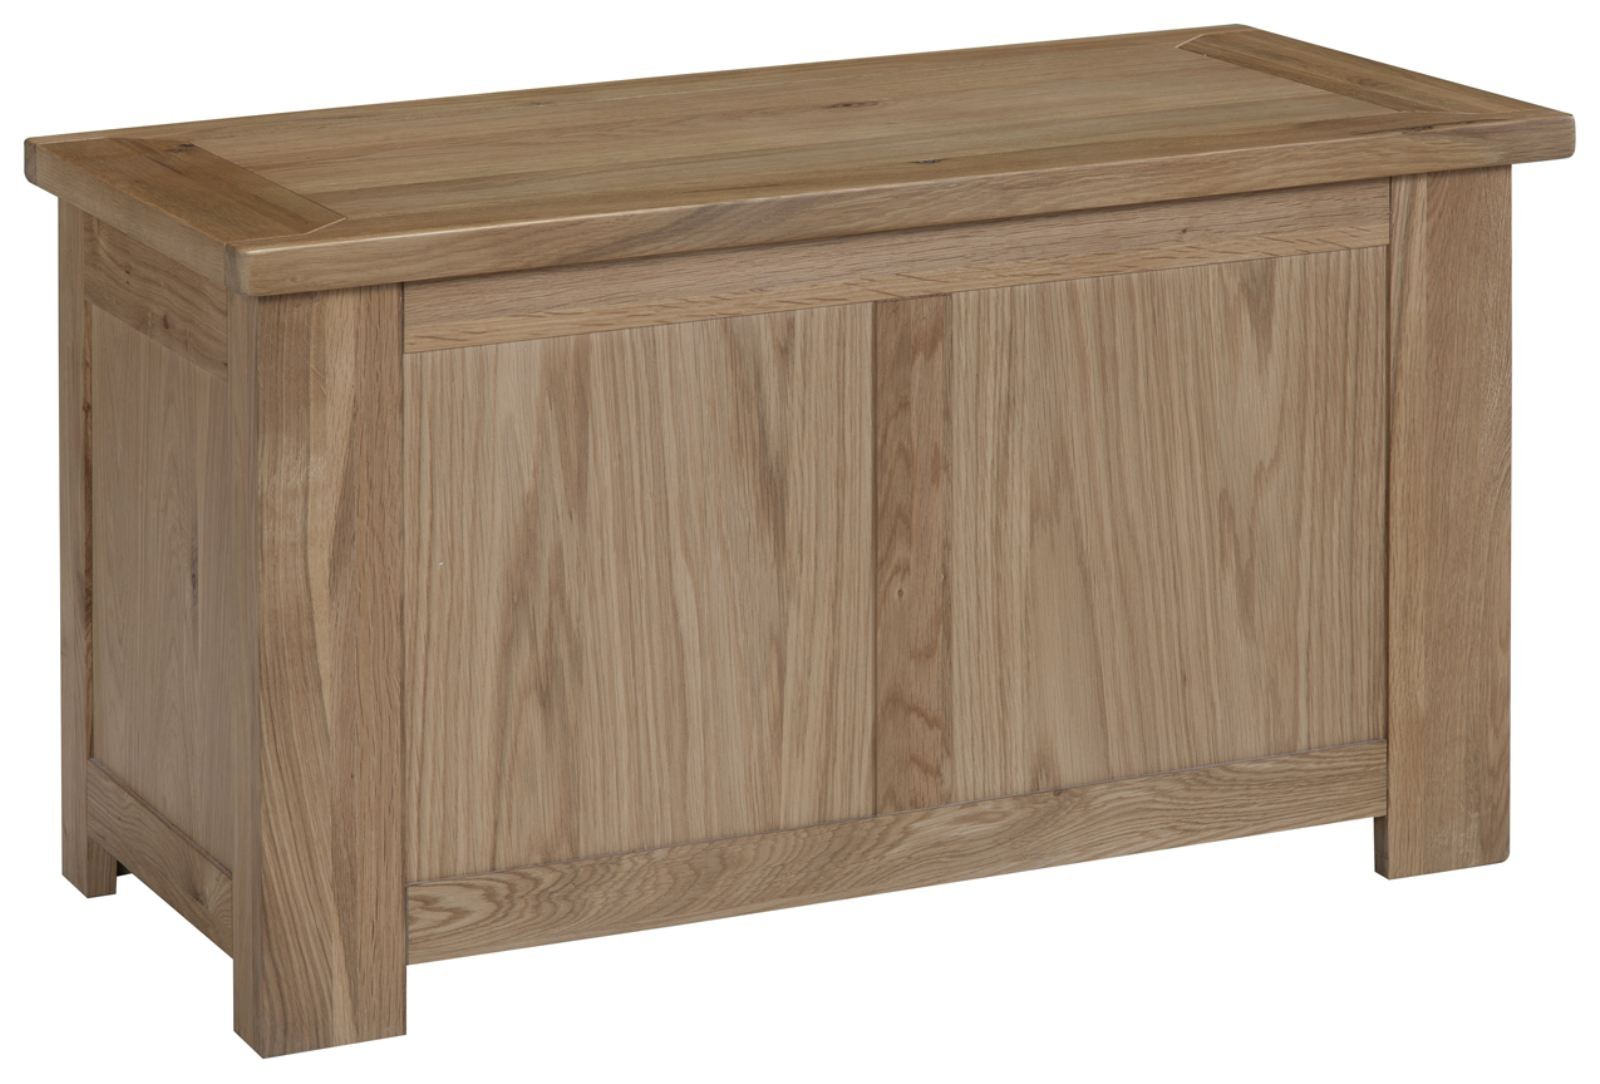 solid oak bedroom furniture blanket storage box trunk chest ebay